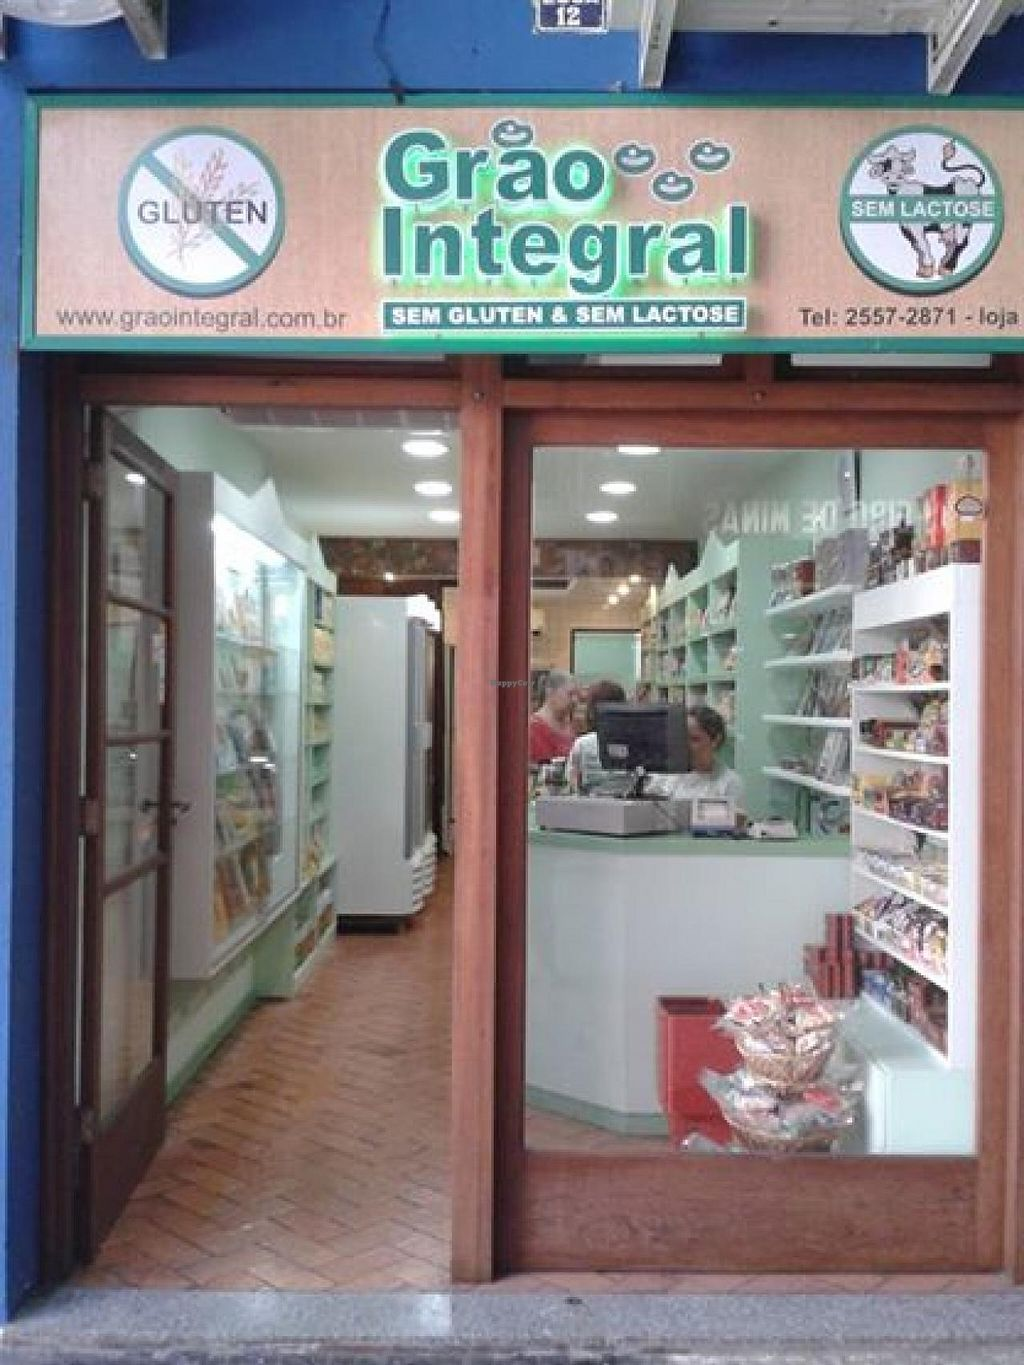 """Photo of Grao Integral  by <a href=""""/members/profile/community"""">community</a> <br/>Grao Integral <br/> July 4, 2014  - <a href='/contact/abuse/image/48455/73213'>Report</a>"""